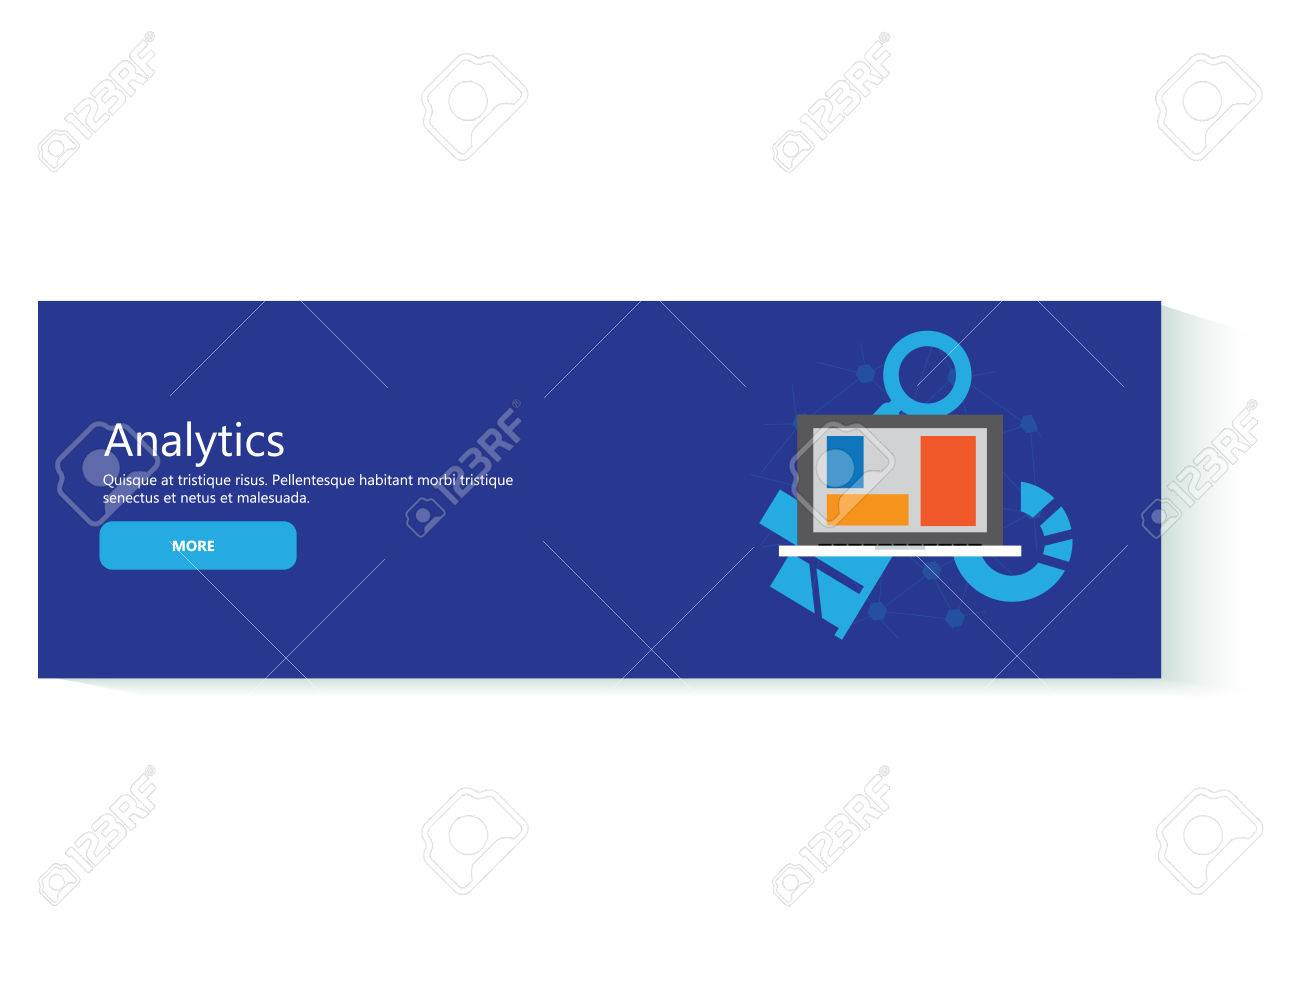 Business Analytic Banners Ocean Banners